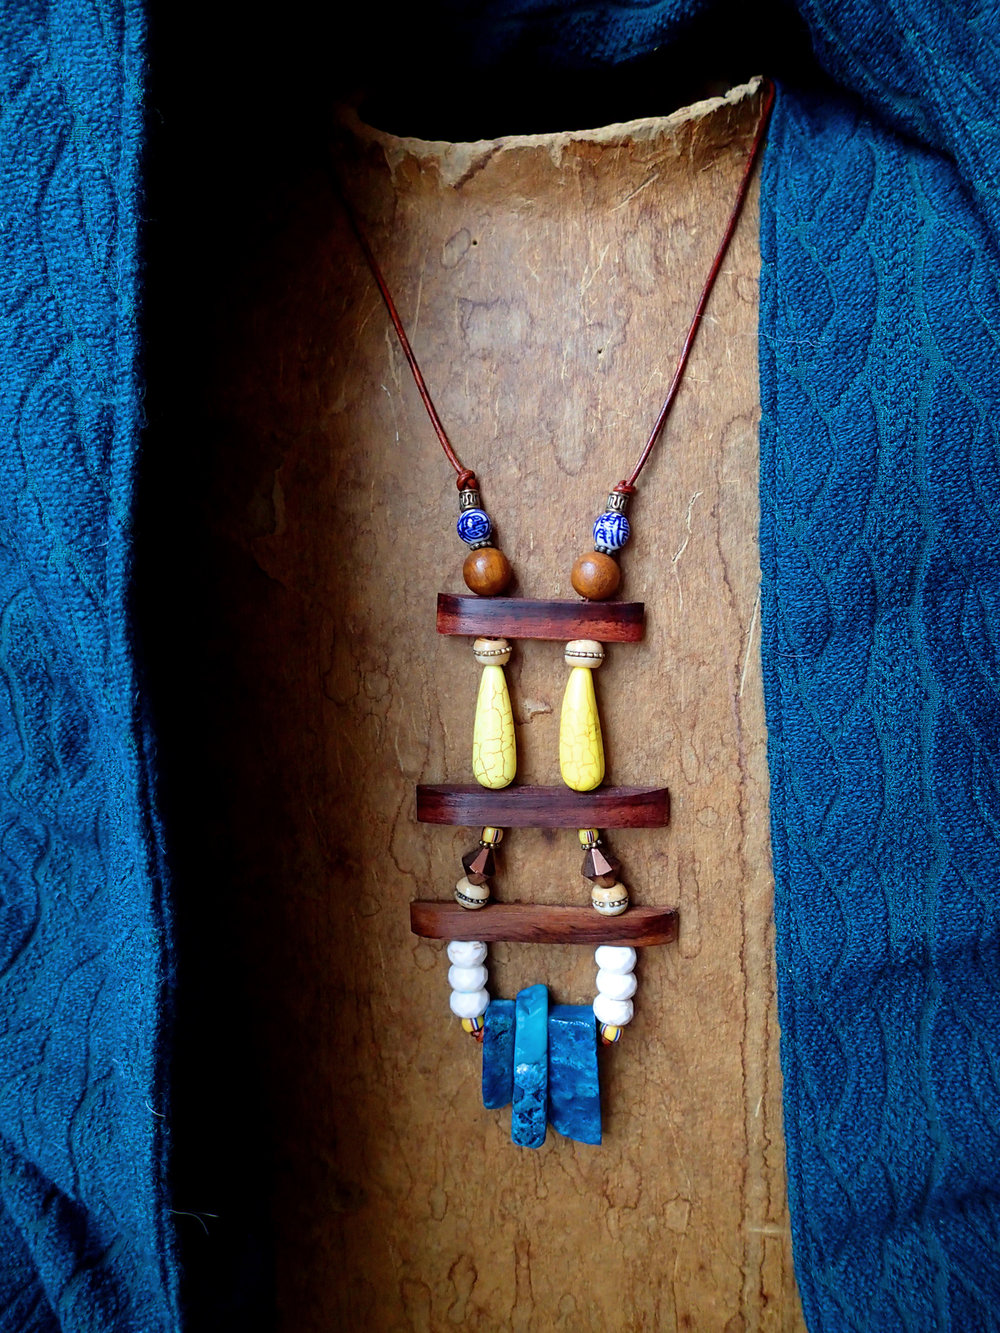 SOLD  4) $95 stone, organic wood, glass & vintage beads on distressed leather. $4 shipping, arrives in a gift box. email me with questions or for a paypal invoice:  cherielester@gmail.com